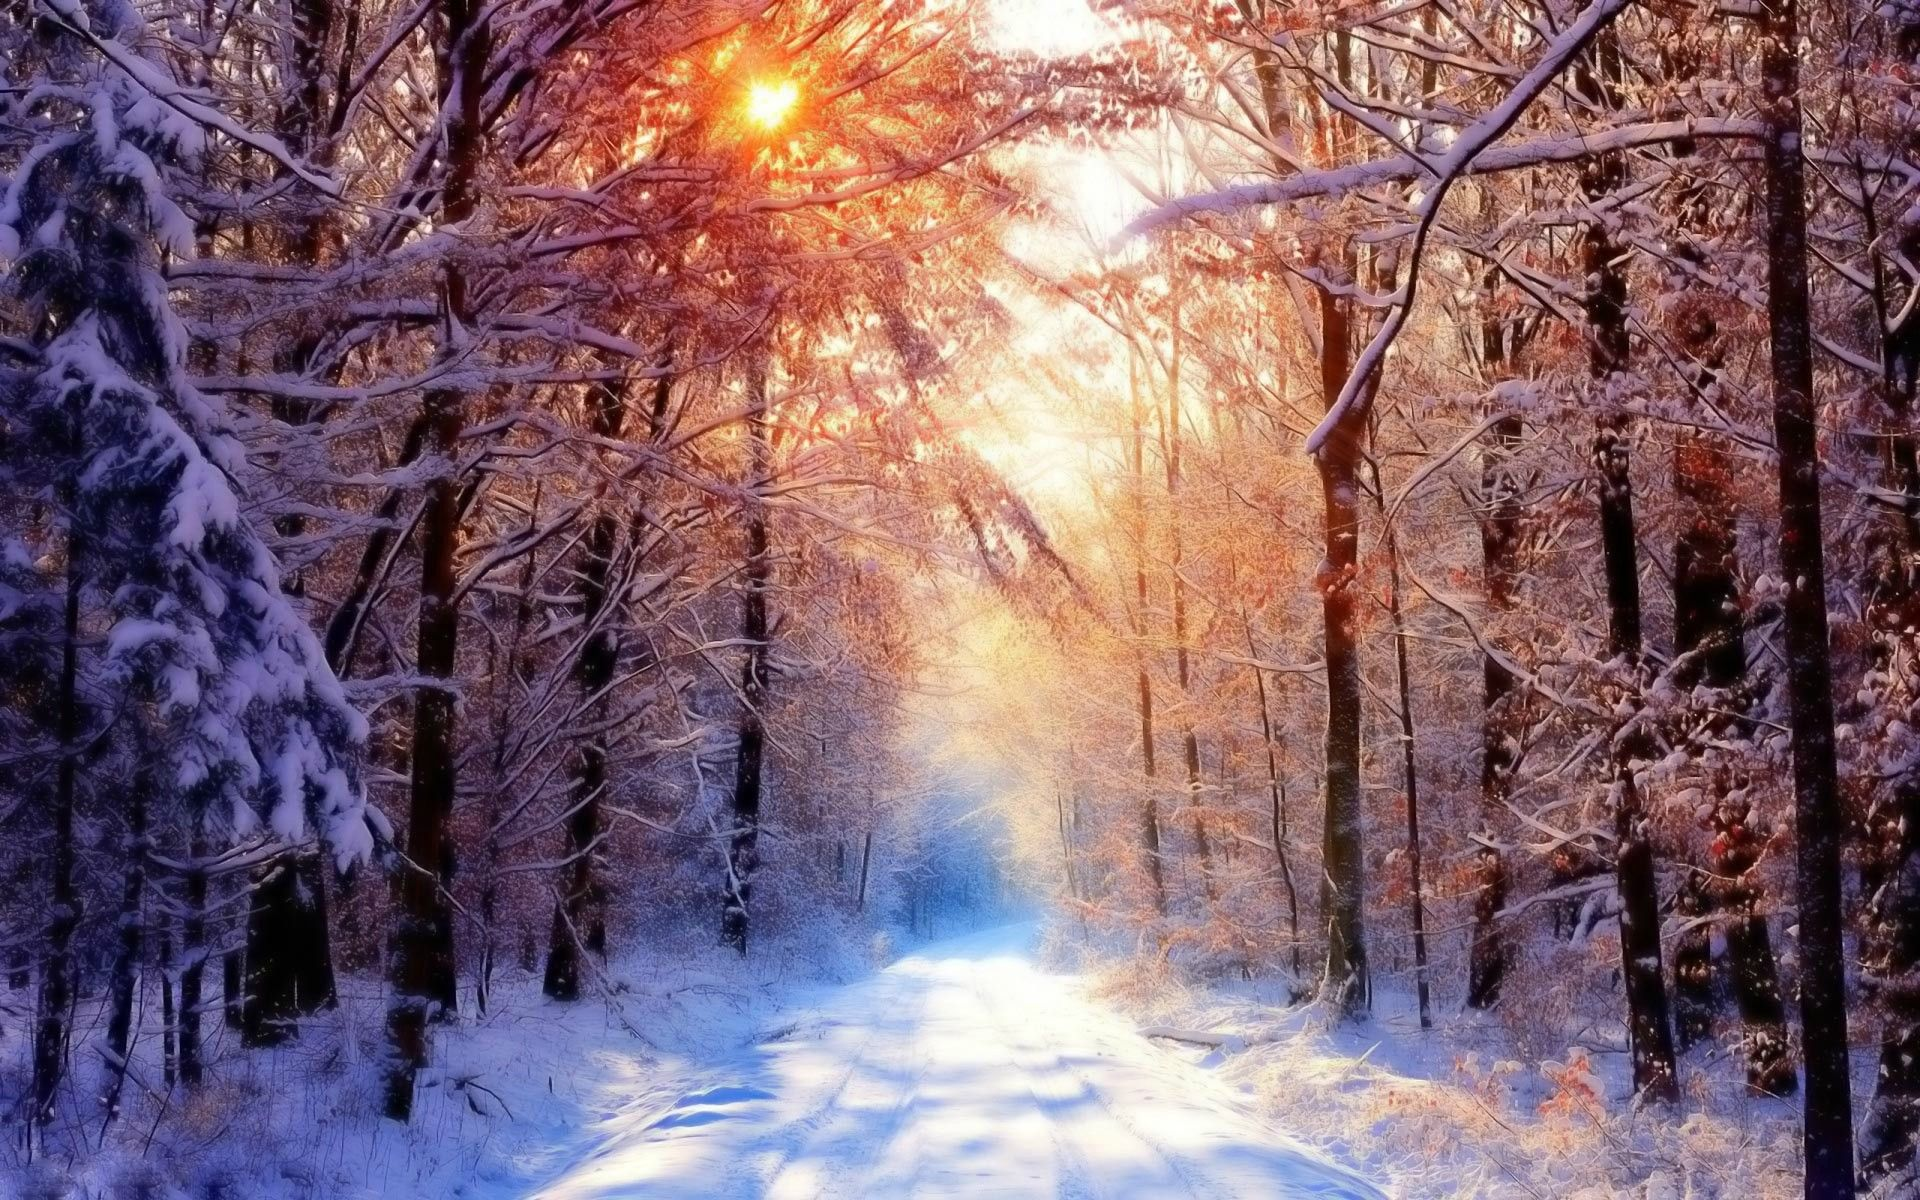 Snow and sun wallpaper (With images) Winter wallpaper